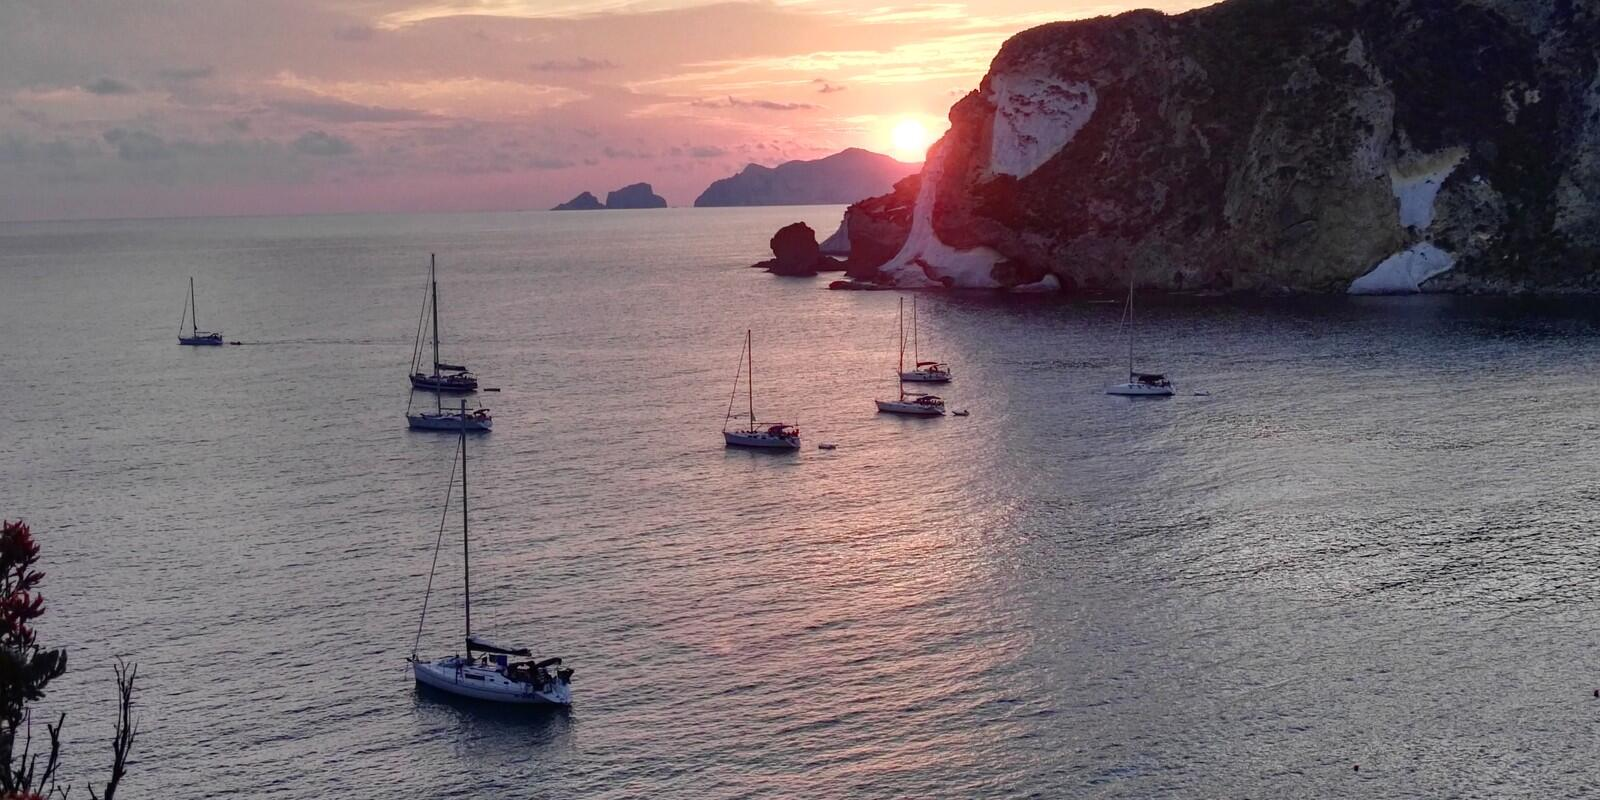 July the heart of summer Ponza and Palmarola